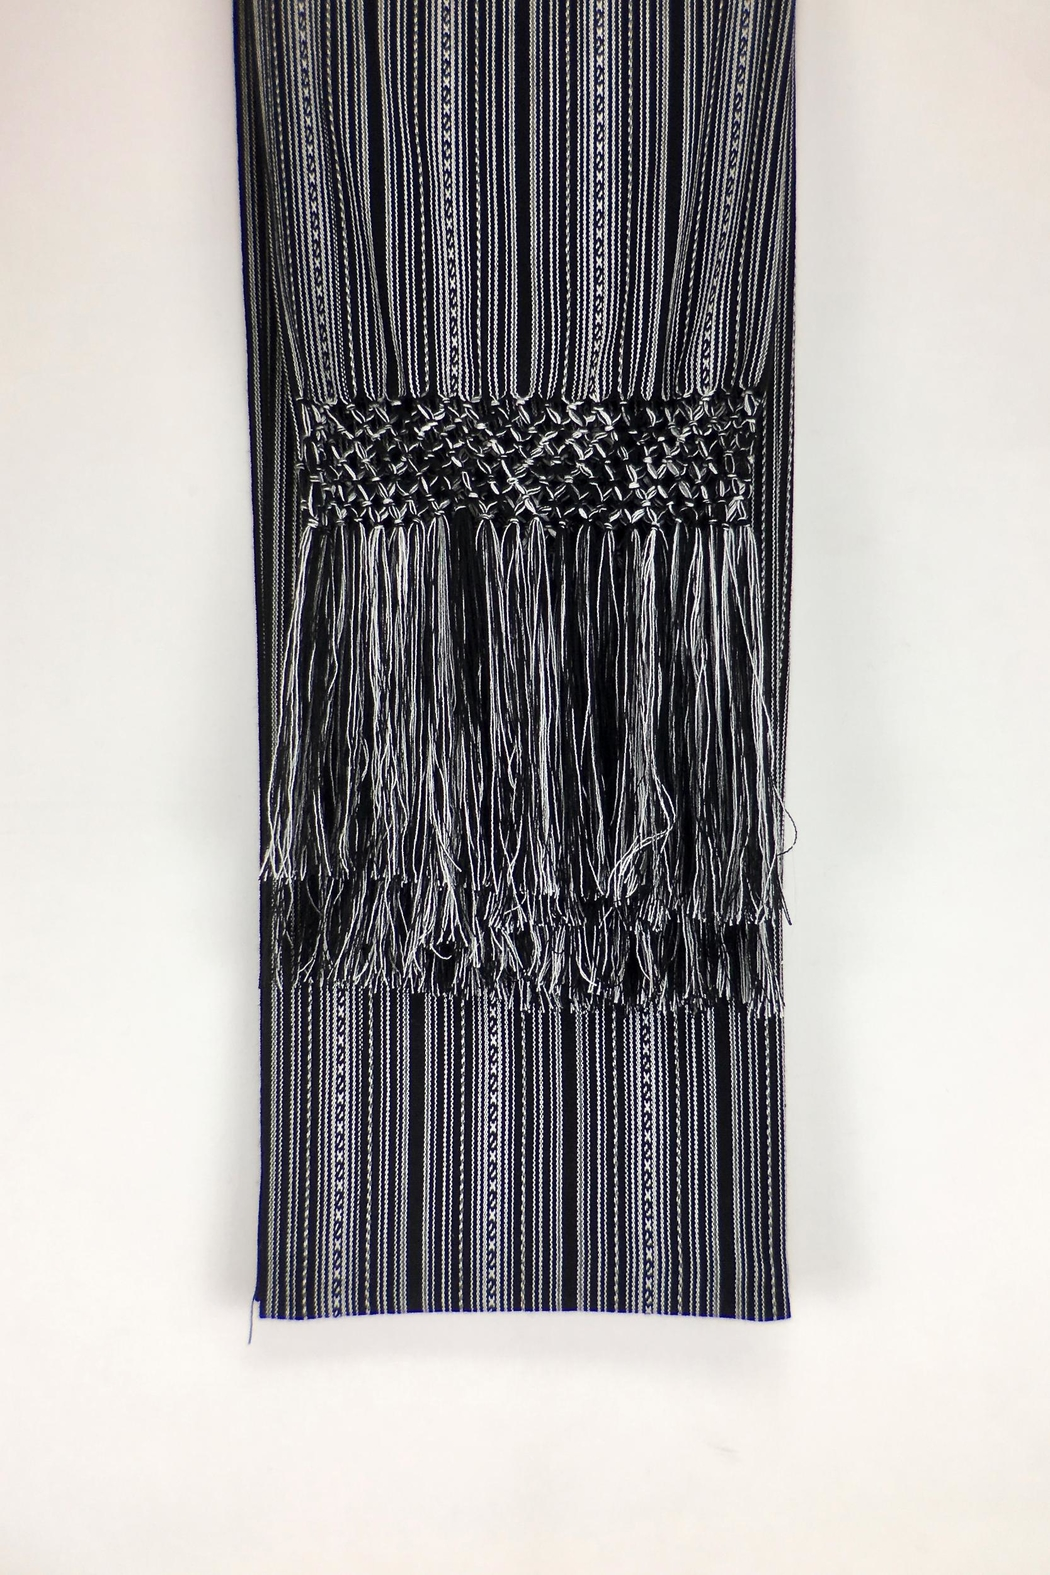 Unbranded Manta-Inca-Woven-Textile Handcrafted Rebozo-Shawl - Front Full Image